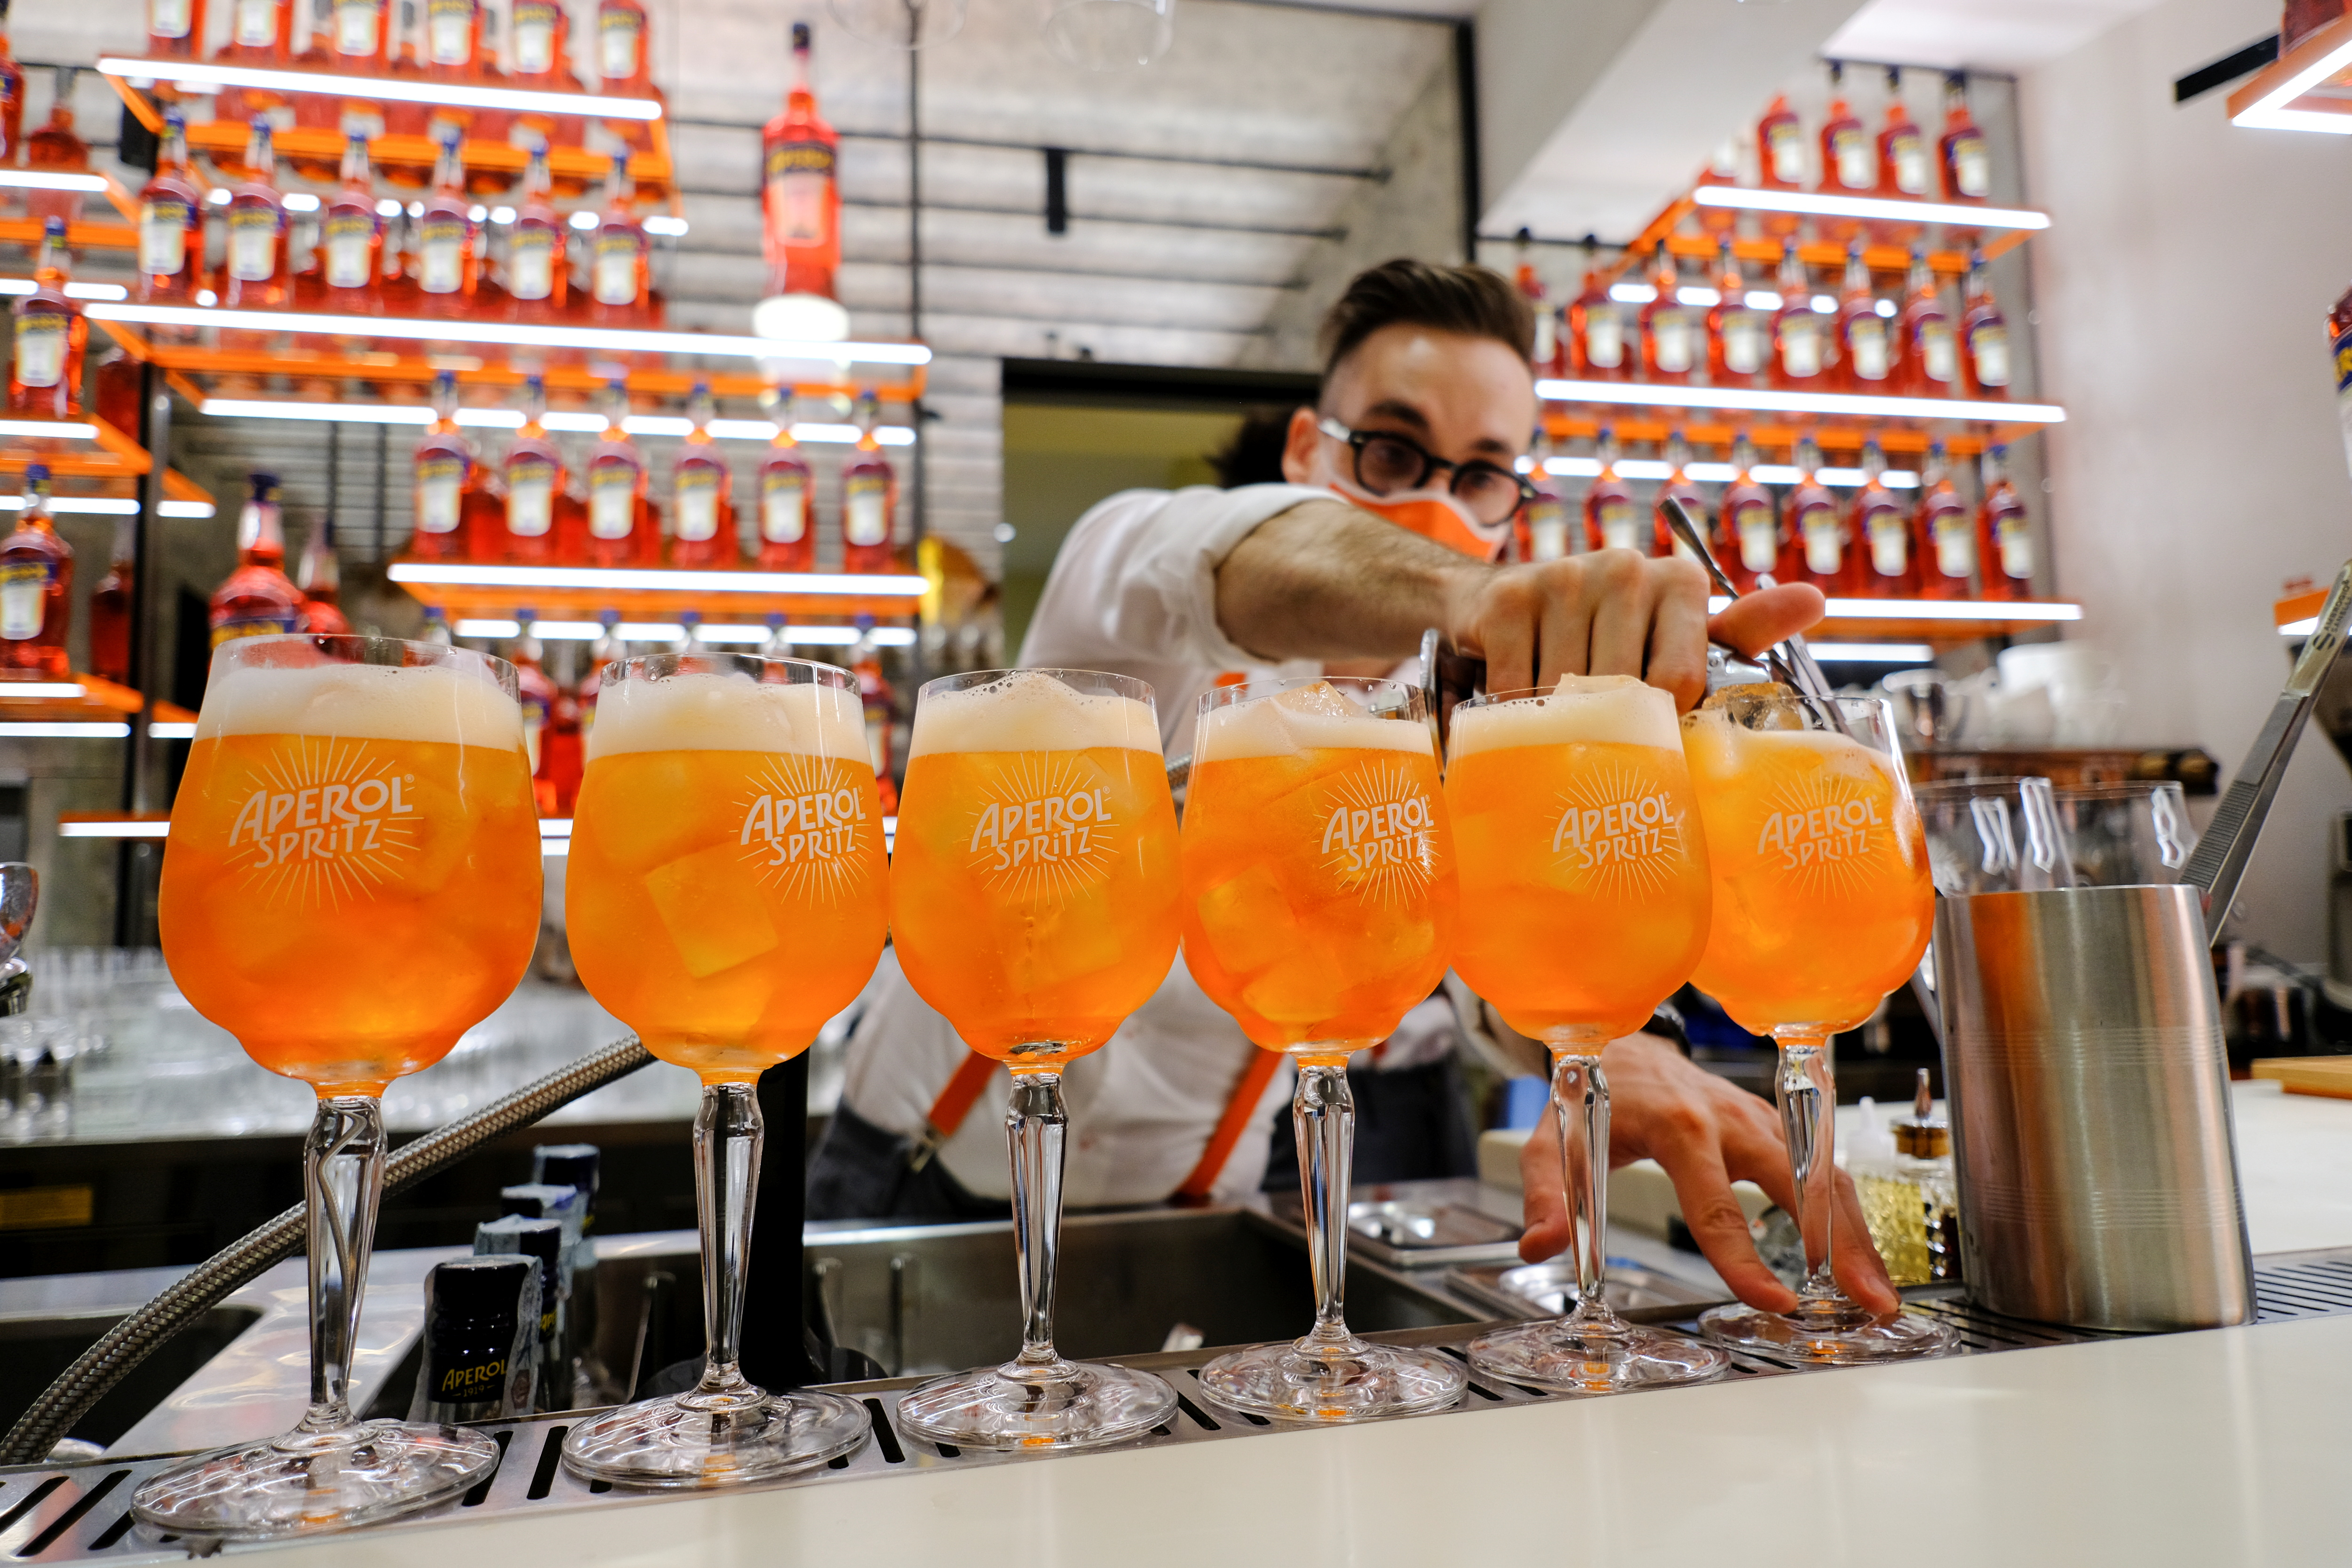 A bartender pours a drink at a Campari inauguration of a new brand house for Aperol, its best-selling beverage, in Venice. Italy, August 30, 2021. REUTERS/Manuel Silvestri